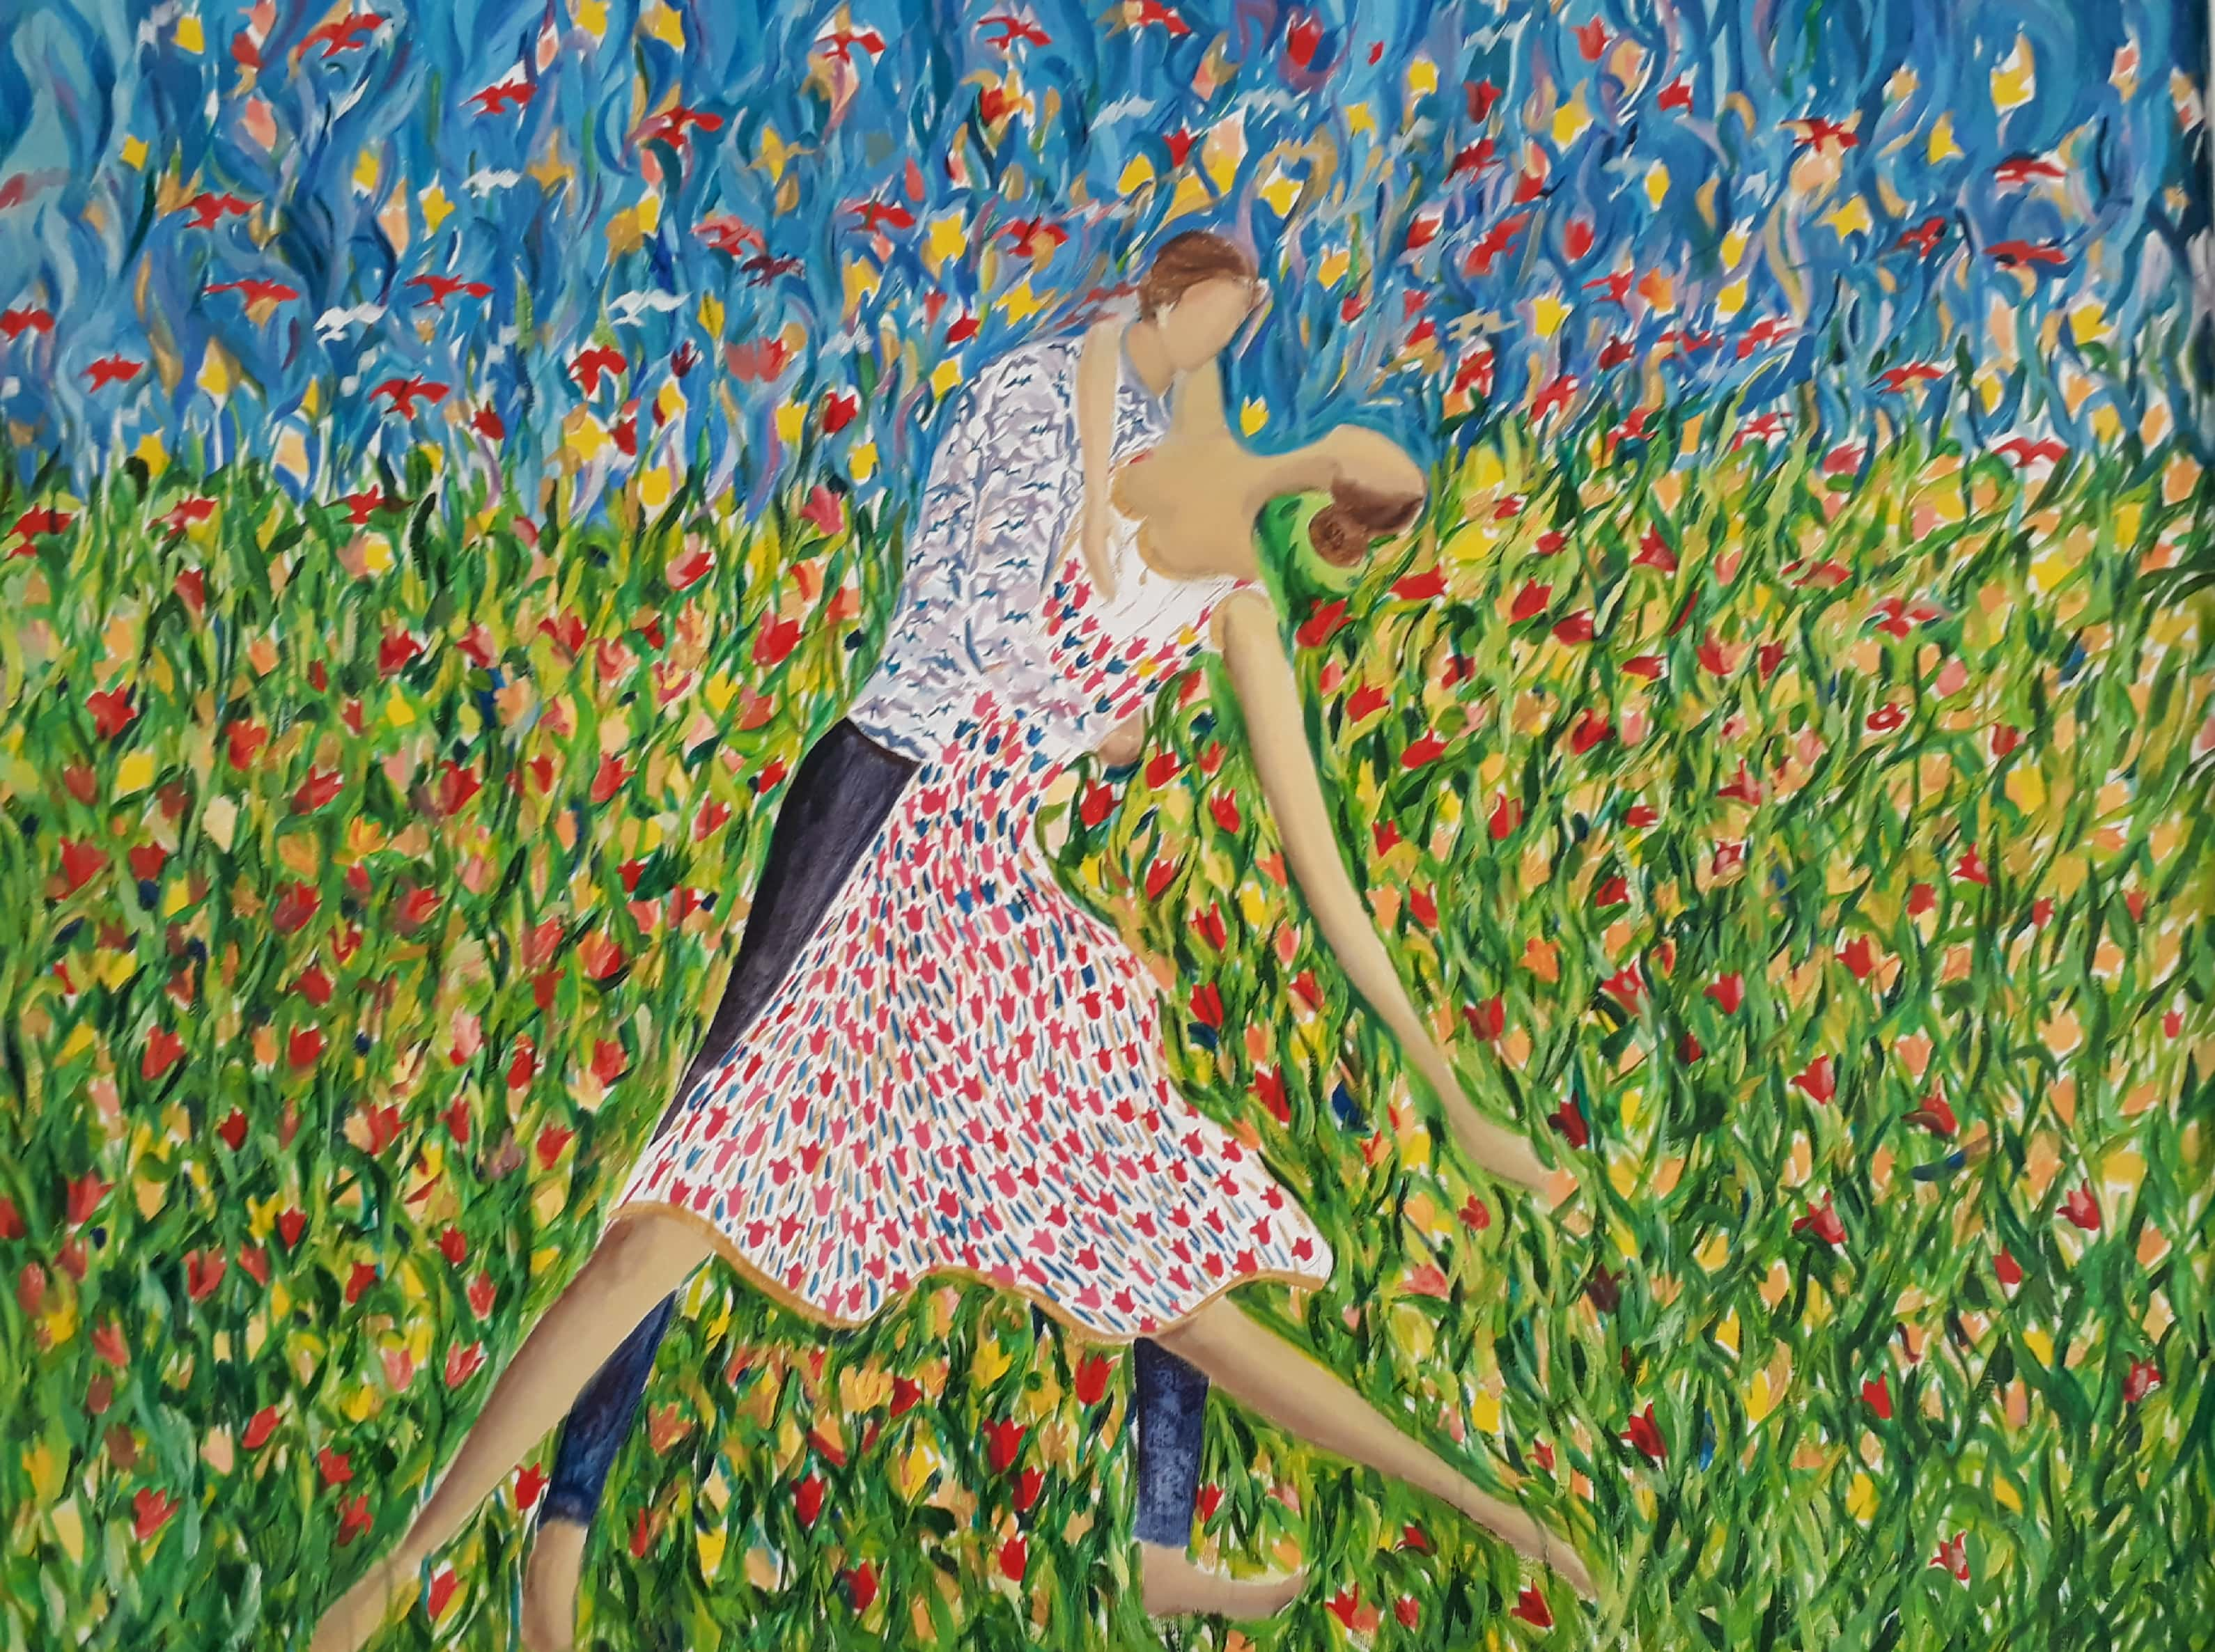 Dance Among Tulips Fine Art by Advait JK